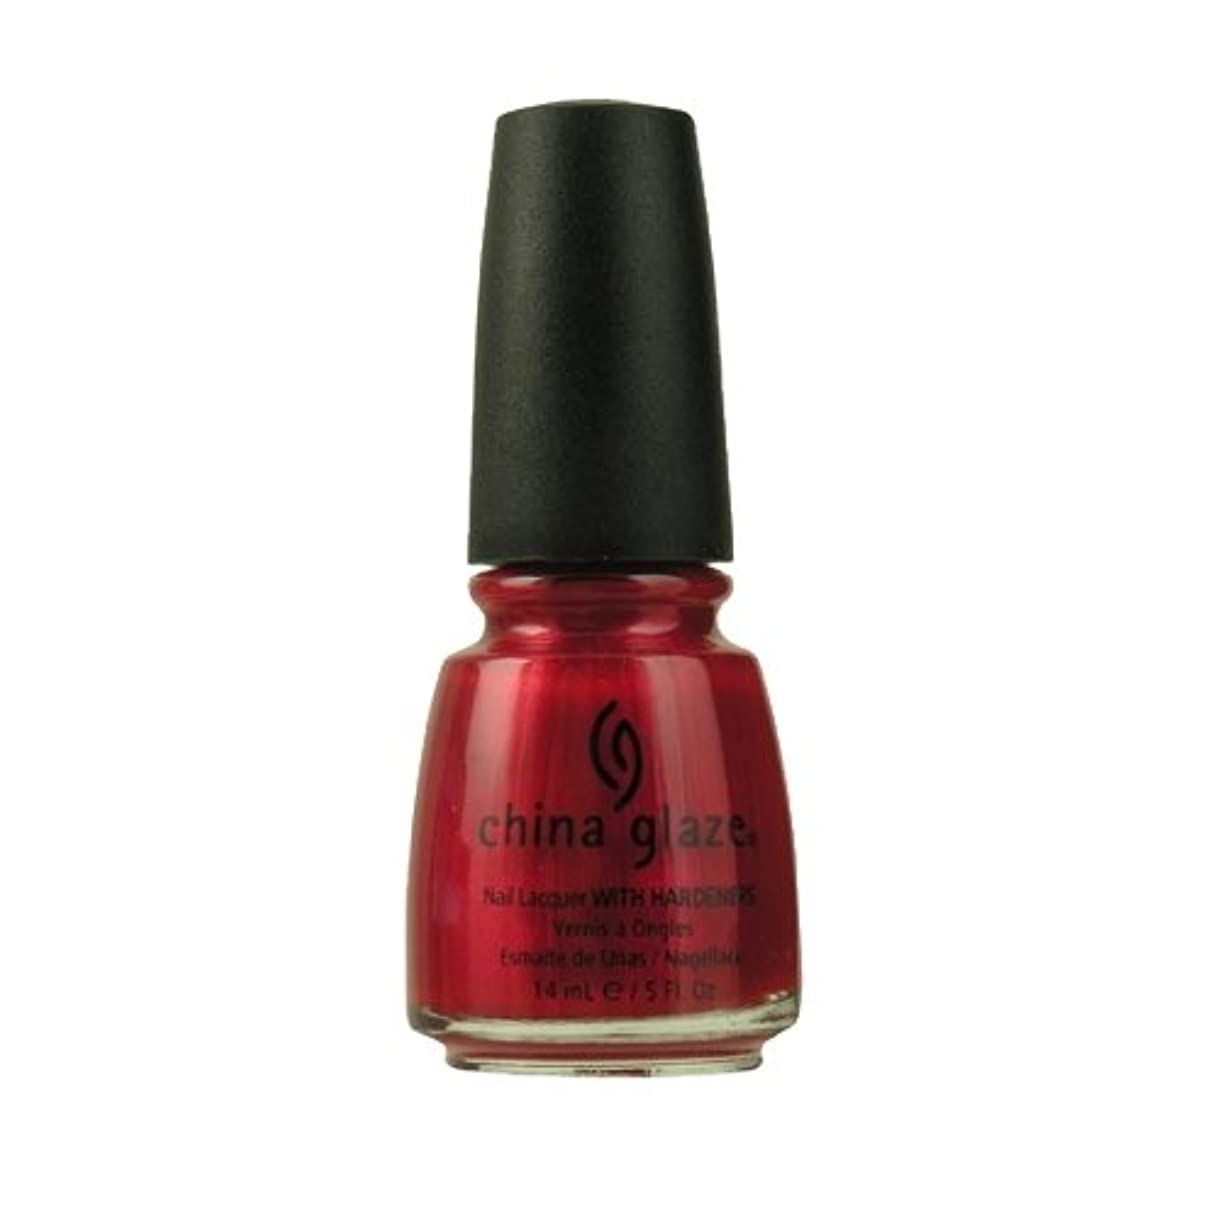 コーン表示ロケットCHINA GLAZE Nail Lacquer with Nail Hardner - Red Pearl (並行輸入品)